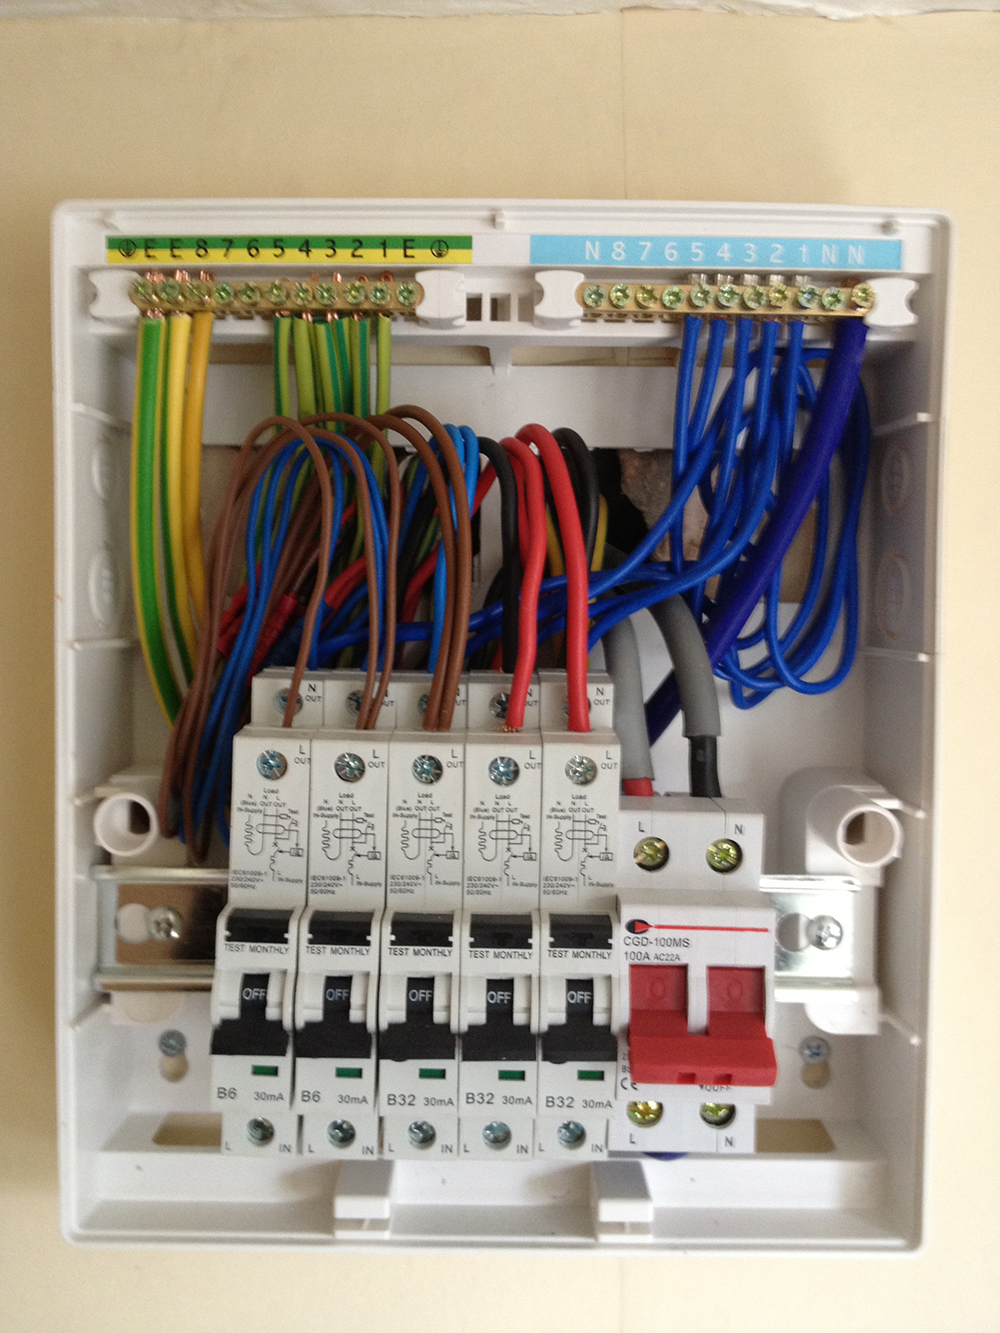 Fantastic rcbo wiring diagram images electrical system block cool wiring a garage consumer unit diagram photos electrical and cheapraybanclubmaster Images